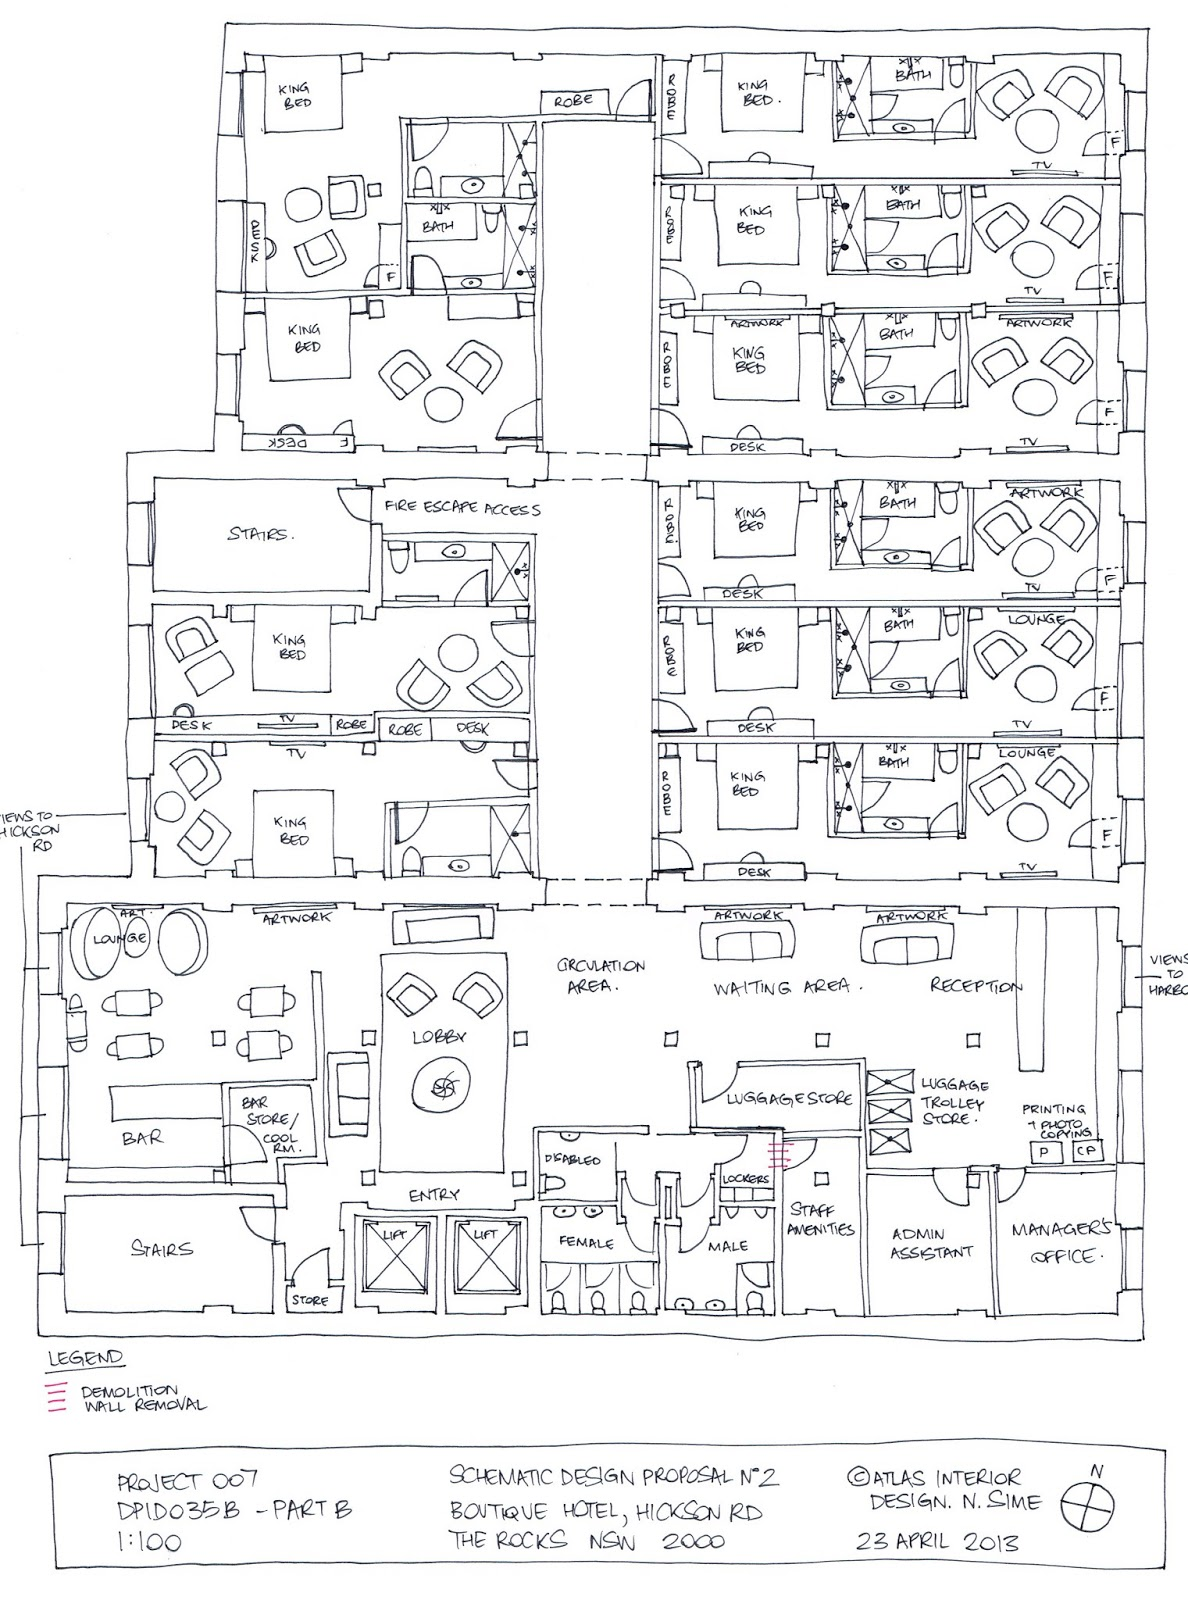 Interiors Dpid035b Complex Brief Present Schematic